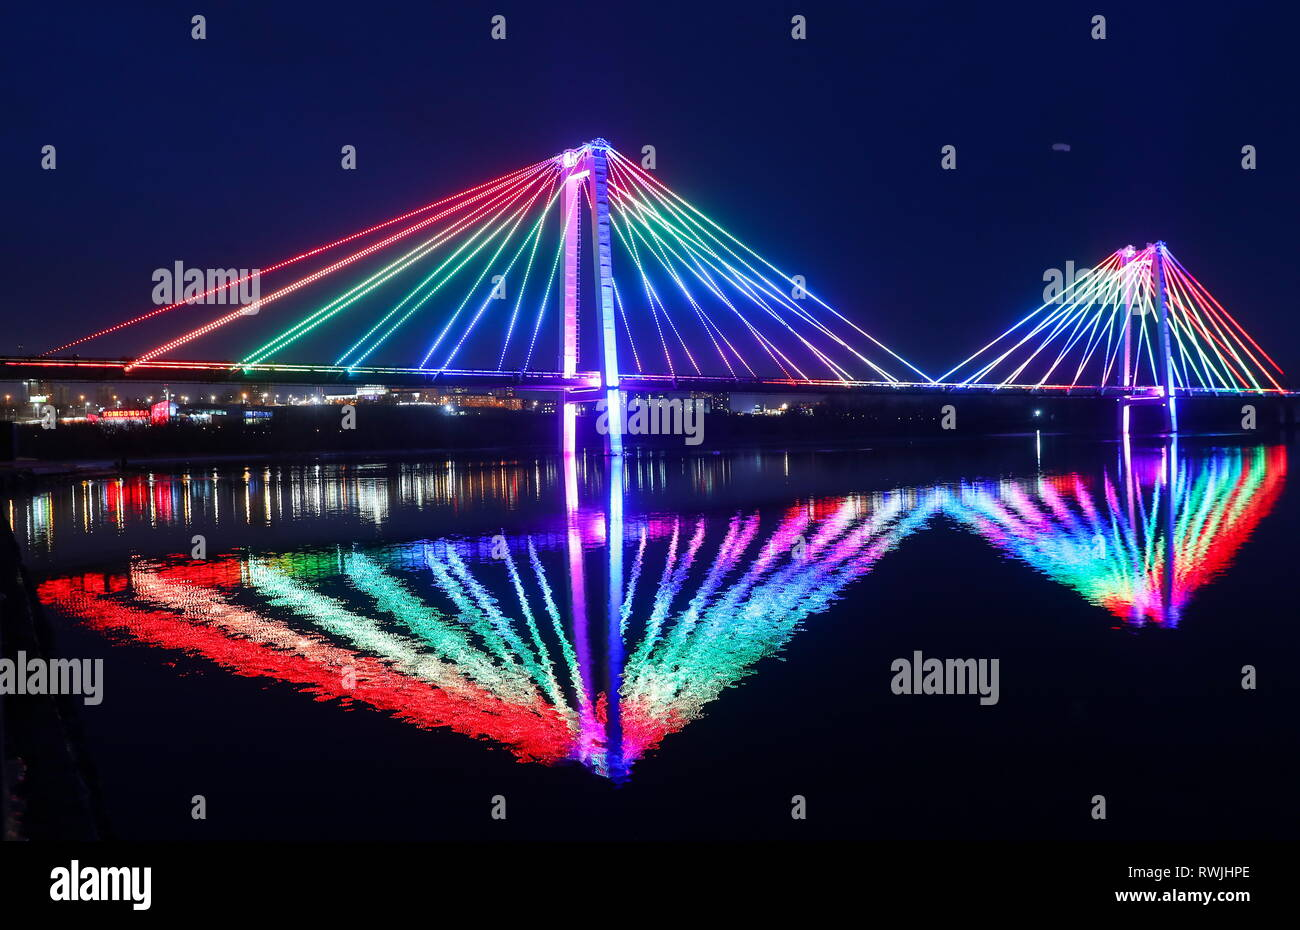 Krasnoyarsk, Russia. 06th Mar, 2019. KRASNOYARSK, RUSSIA - MARCH 6, 2019: A view of Vinogradovsky Bridge, a cable-stayed foot and cycle bridge over the Yenisei River in Krasnoyarsk, illuminated for a light and music show as part of the 2019 Winter Universiade. Peter Kovalev/TASS Credit: ITAR-TASS News Agency/Alamy Live News - Stock Image